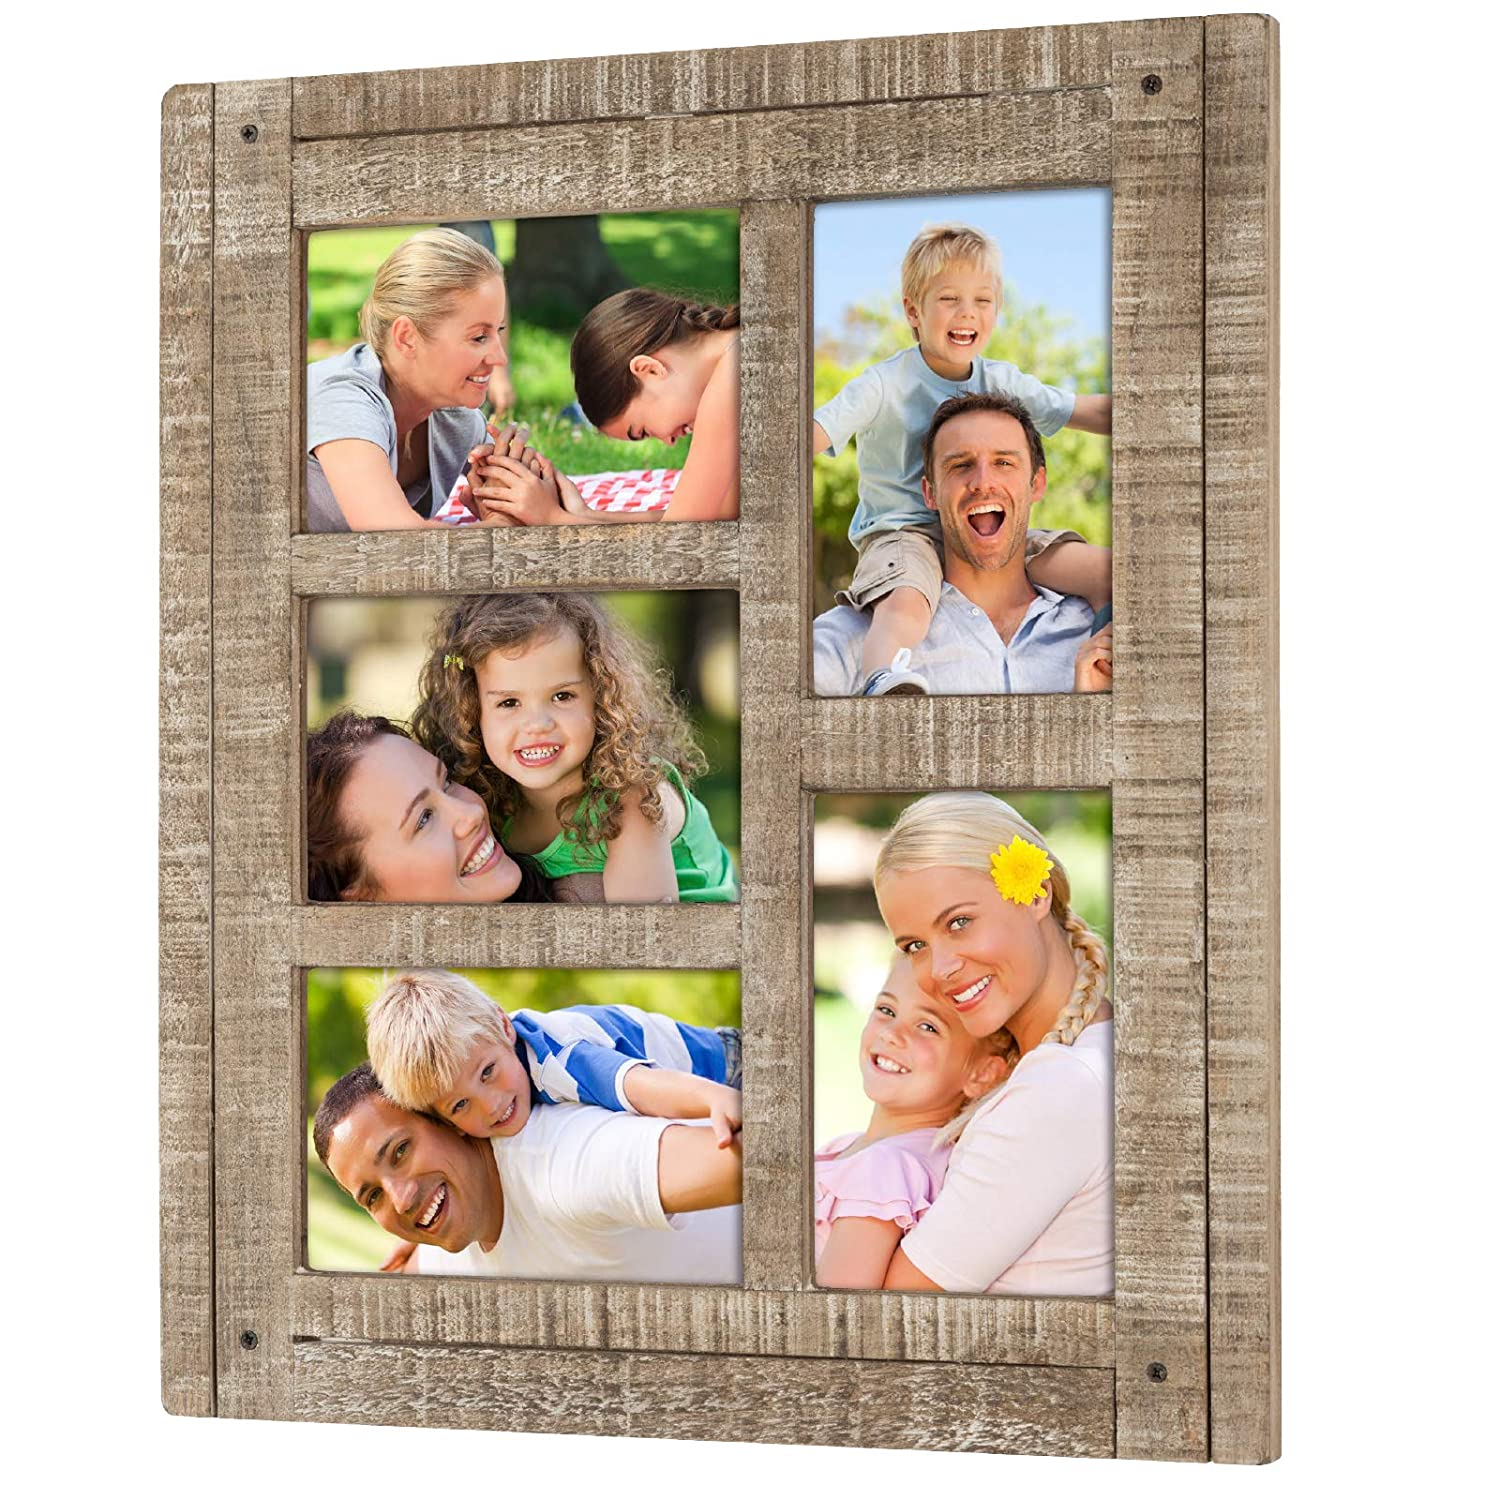 Collage Picture Frames from Rustic Distressed Wood: Holds Five 4x6 Photos: Ready to Hang or use Tabletop. Shabby Chic, Driftwood, Barnwood, Farmhouse, Reclaimed Wood Picture Frame Collage (Brown)